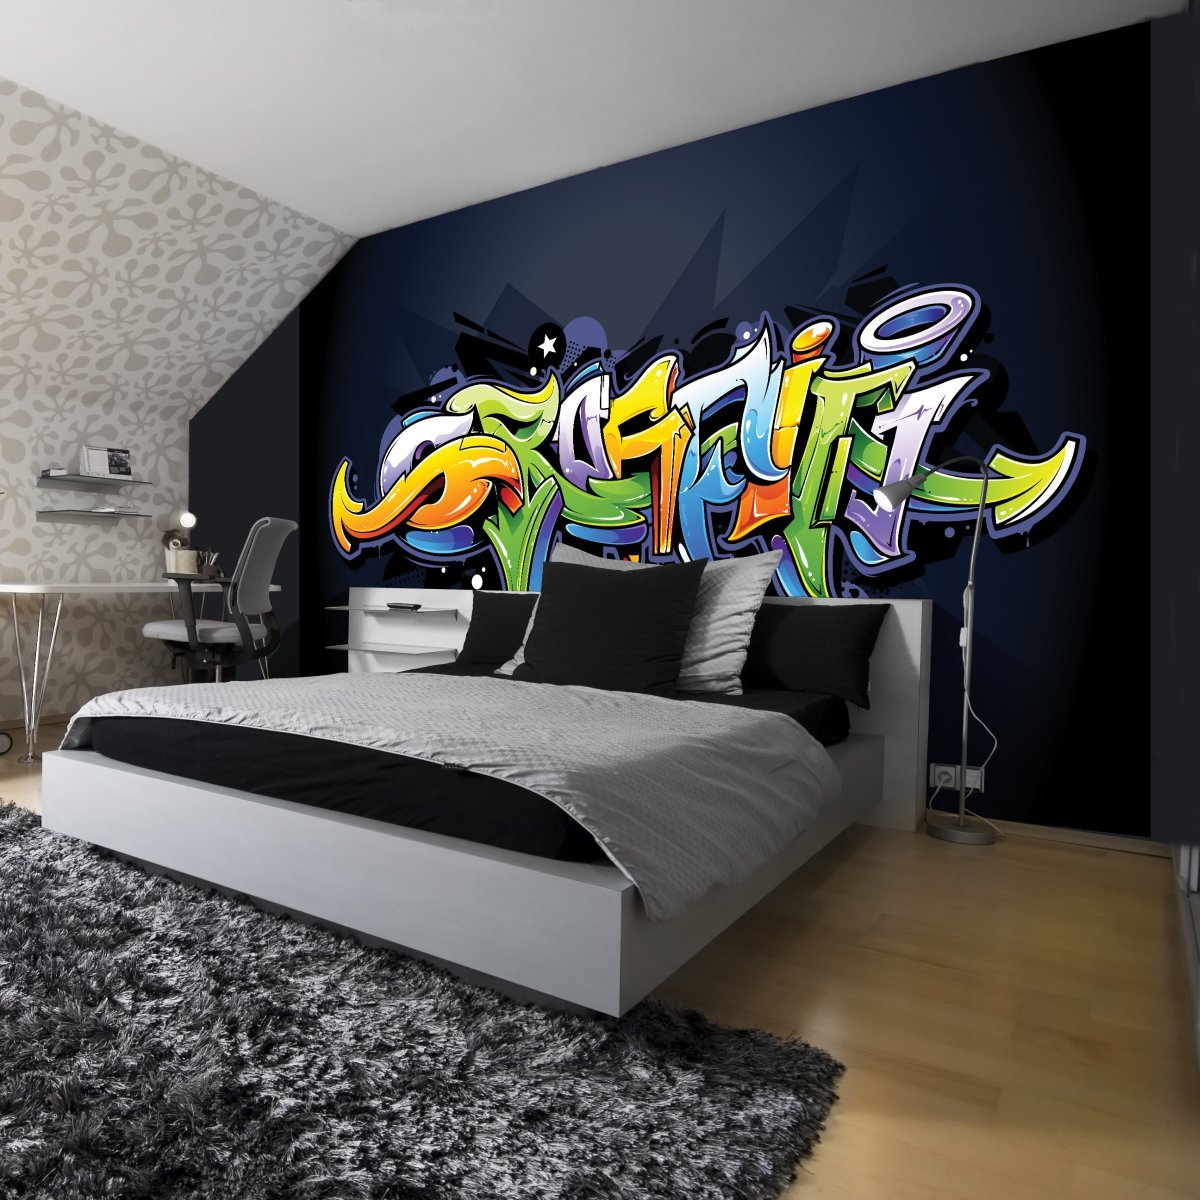 wandtattoo jugendzimmer jungen graffiti reuniecollegenoetsele. Black Bedroom Furniture Sets. Home Design Ideas